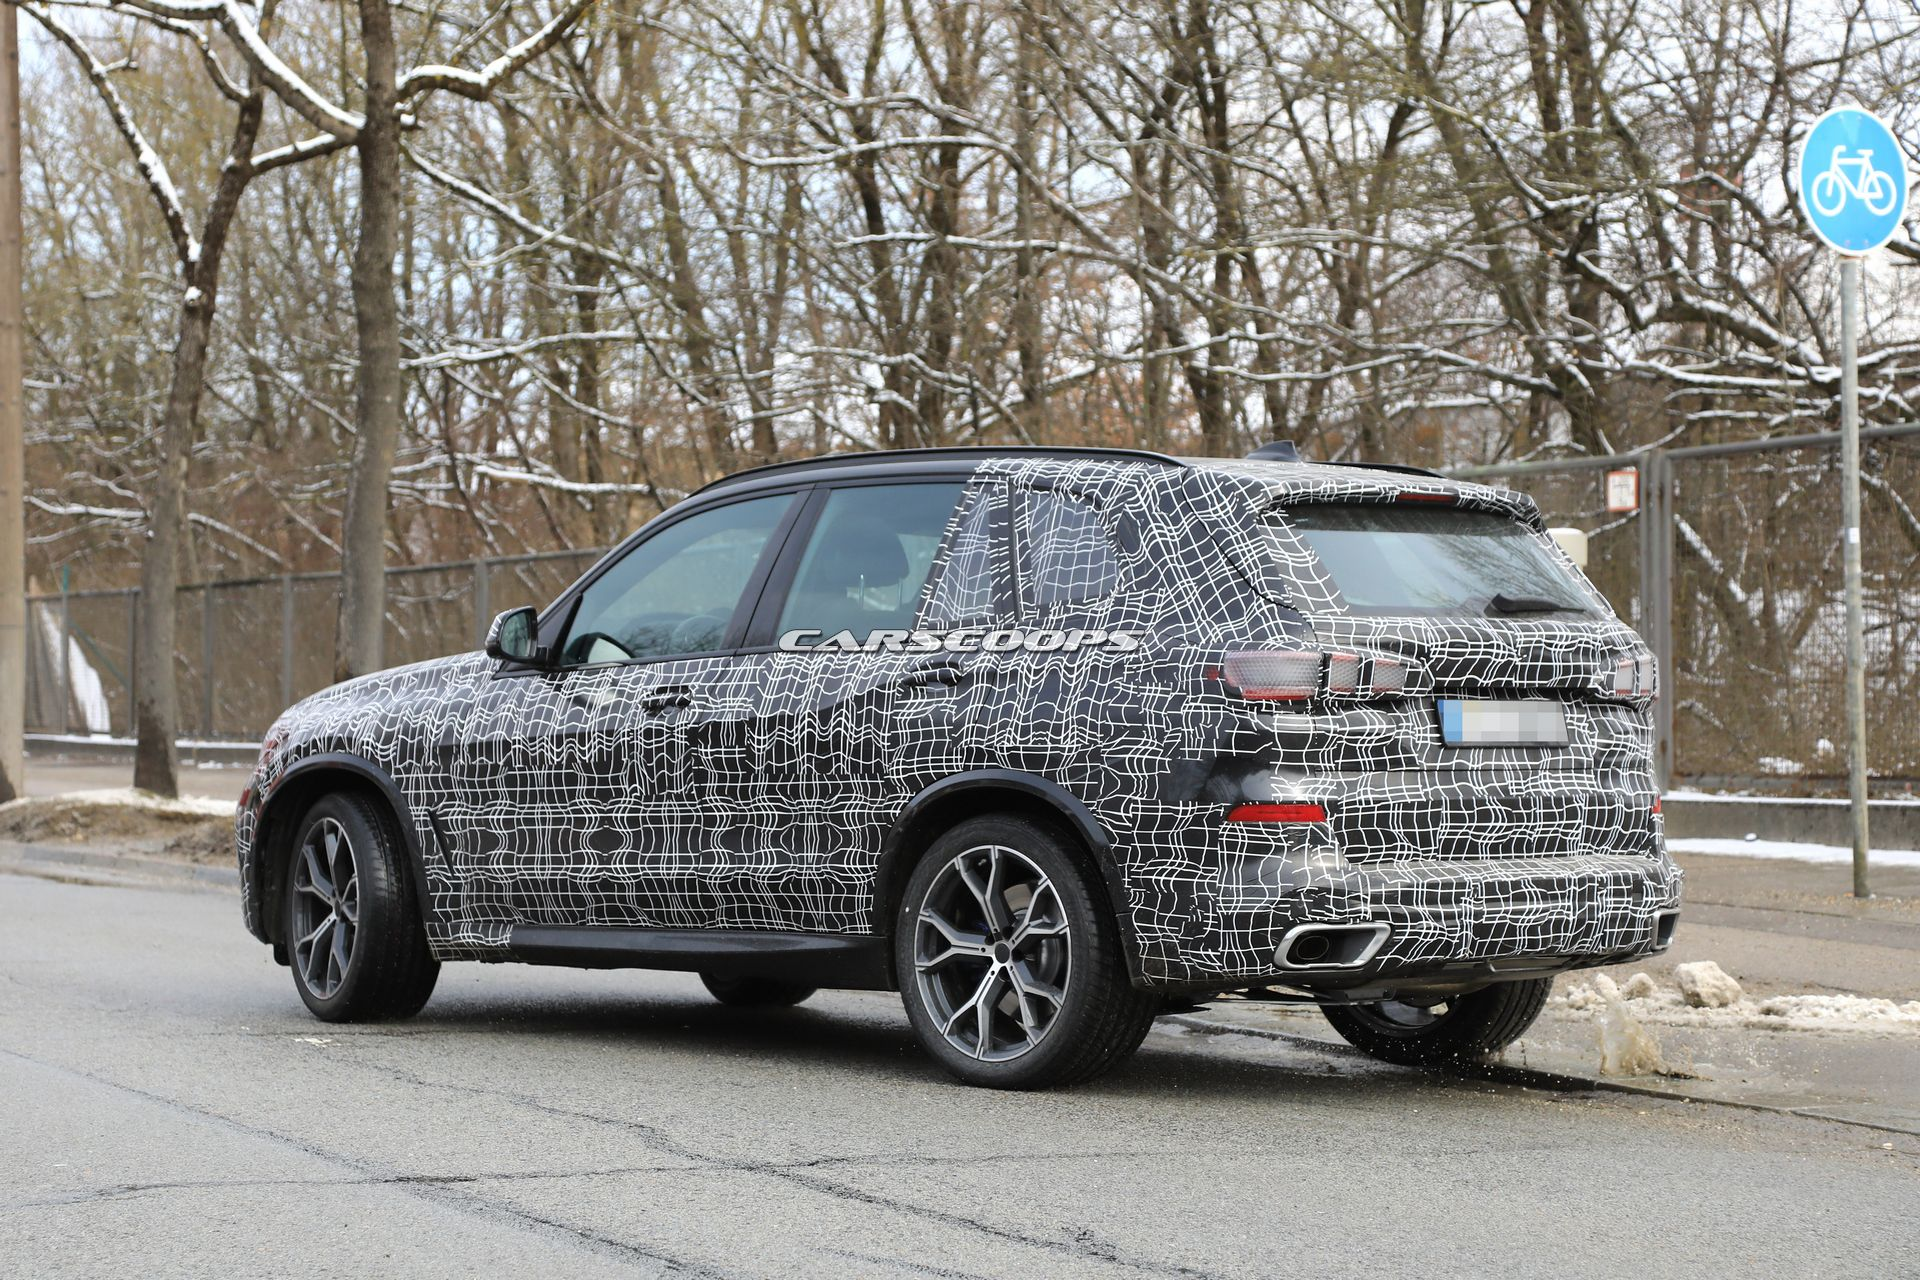 2019 bmw x5 everything we know plus our first good look inside carscoops. Black Bedroom Furniture Sets. Home Design Ideas